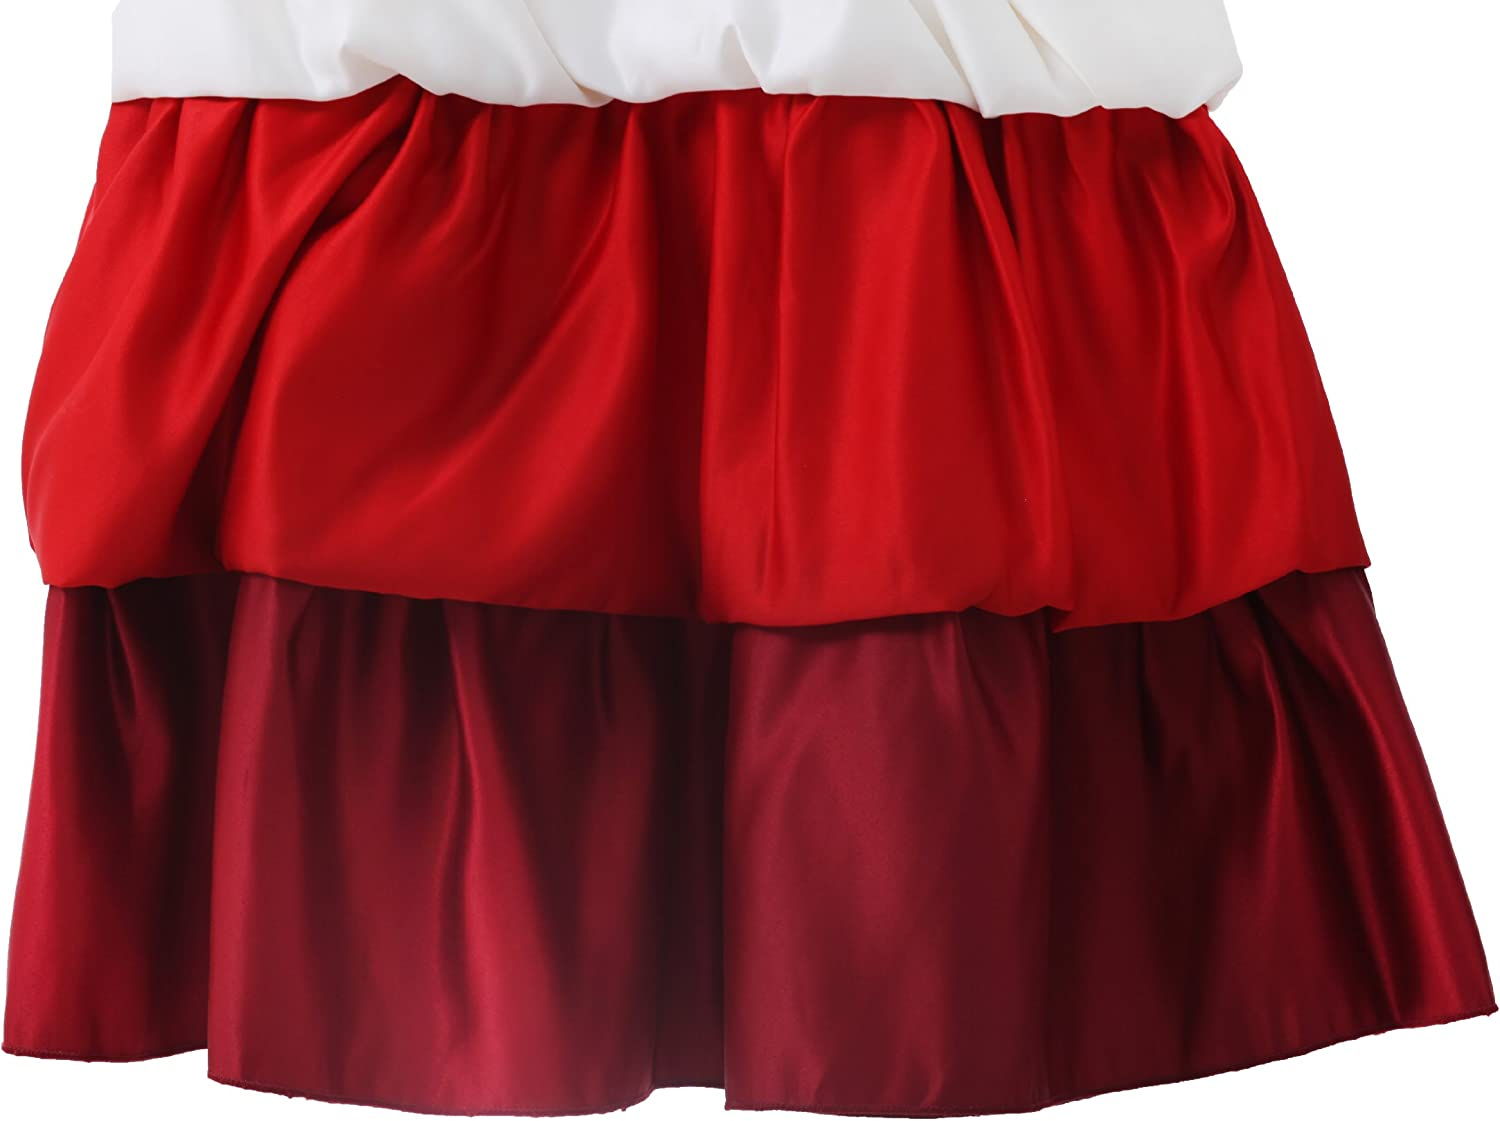 Richie House Big Girls' White and Red Multi-Layered Dress with Rose RH0164